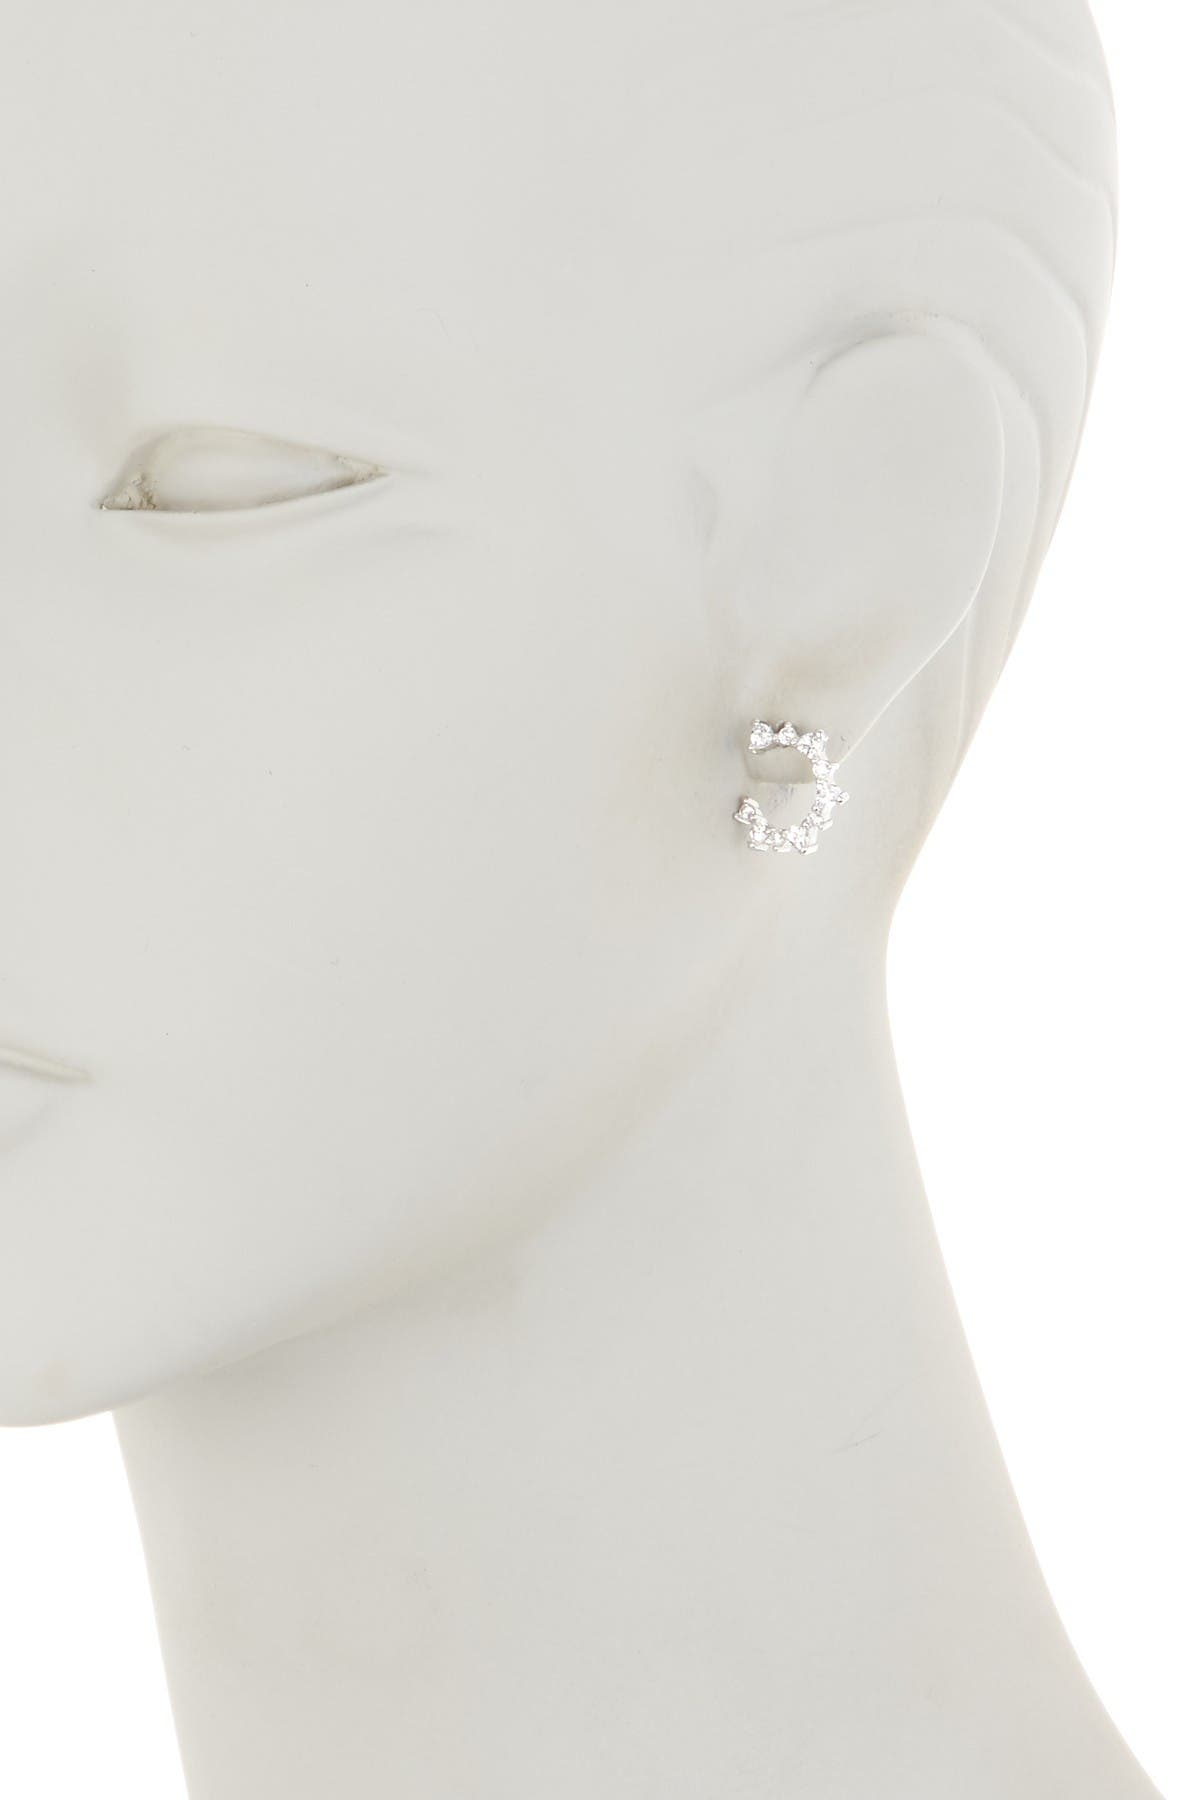 Image of Nordstrom Rack Pave CZ Curved Stud Earrings